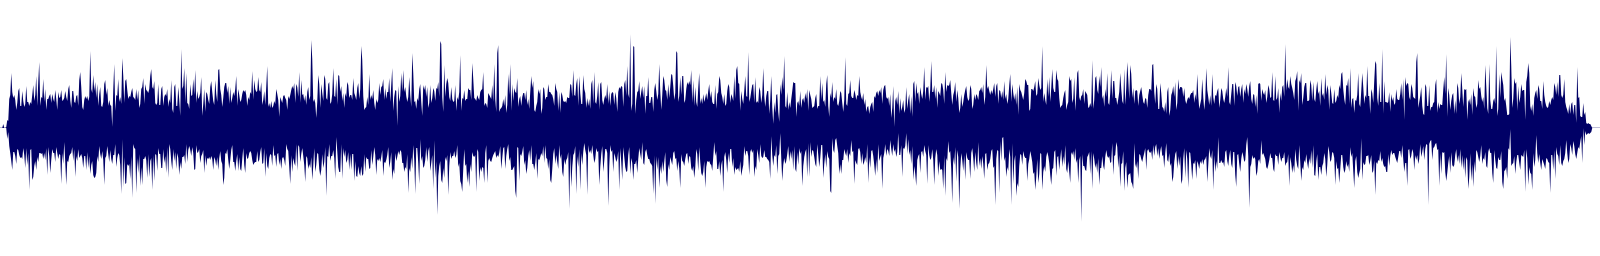 waveform of track #137162